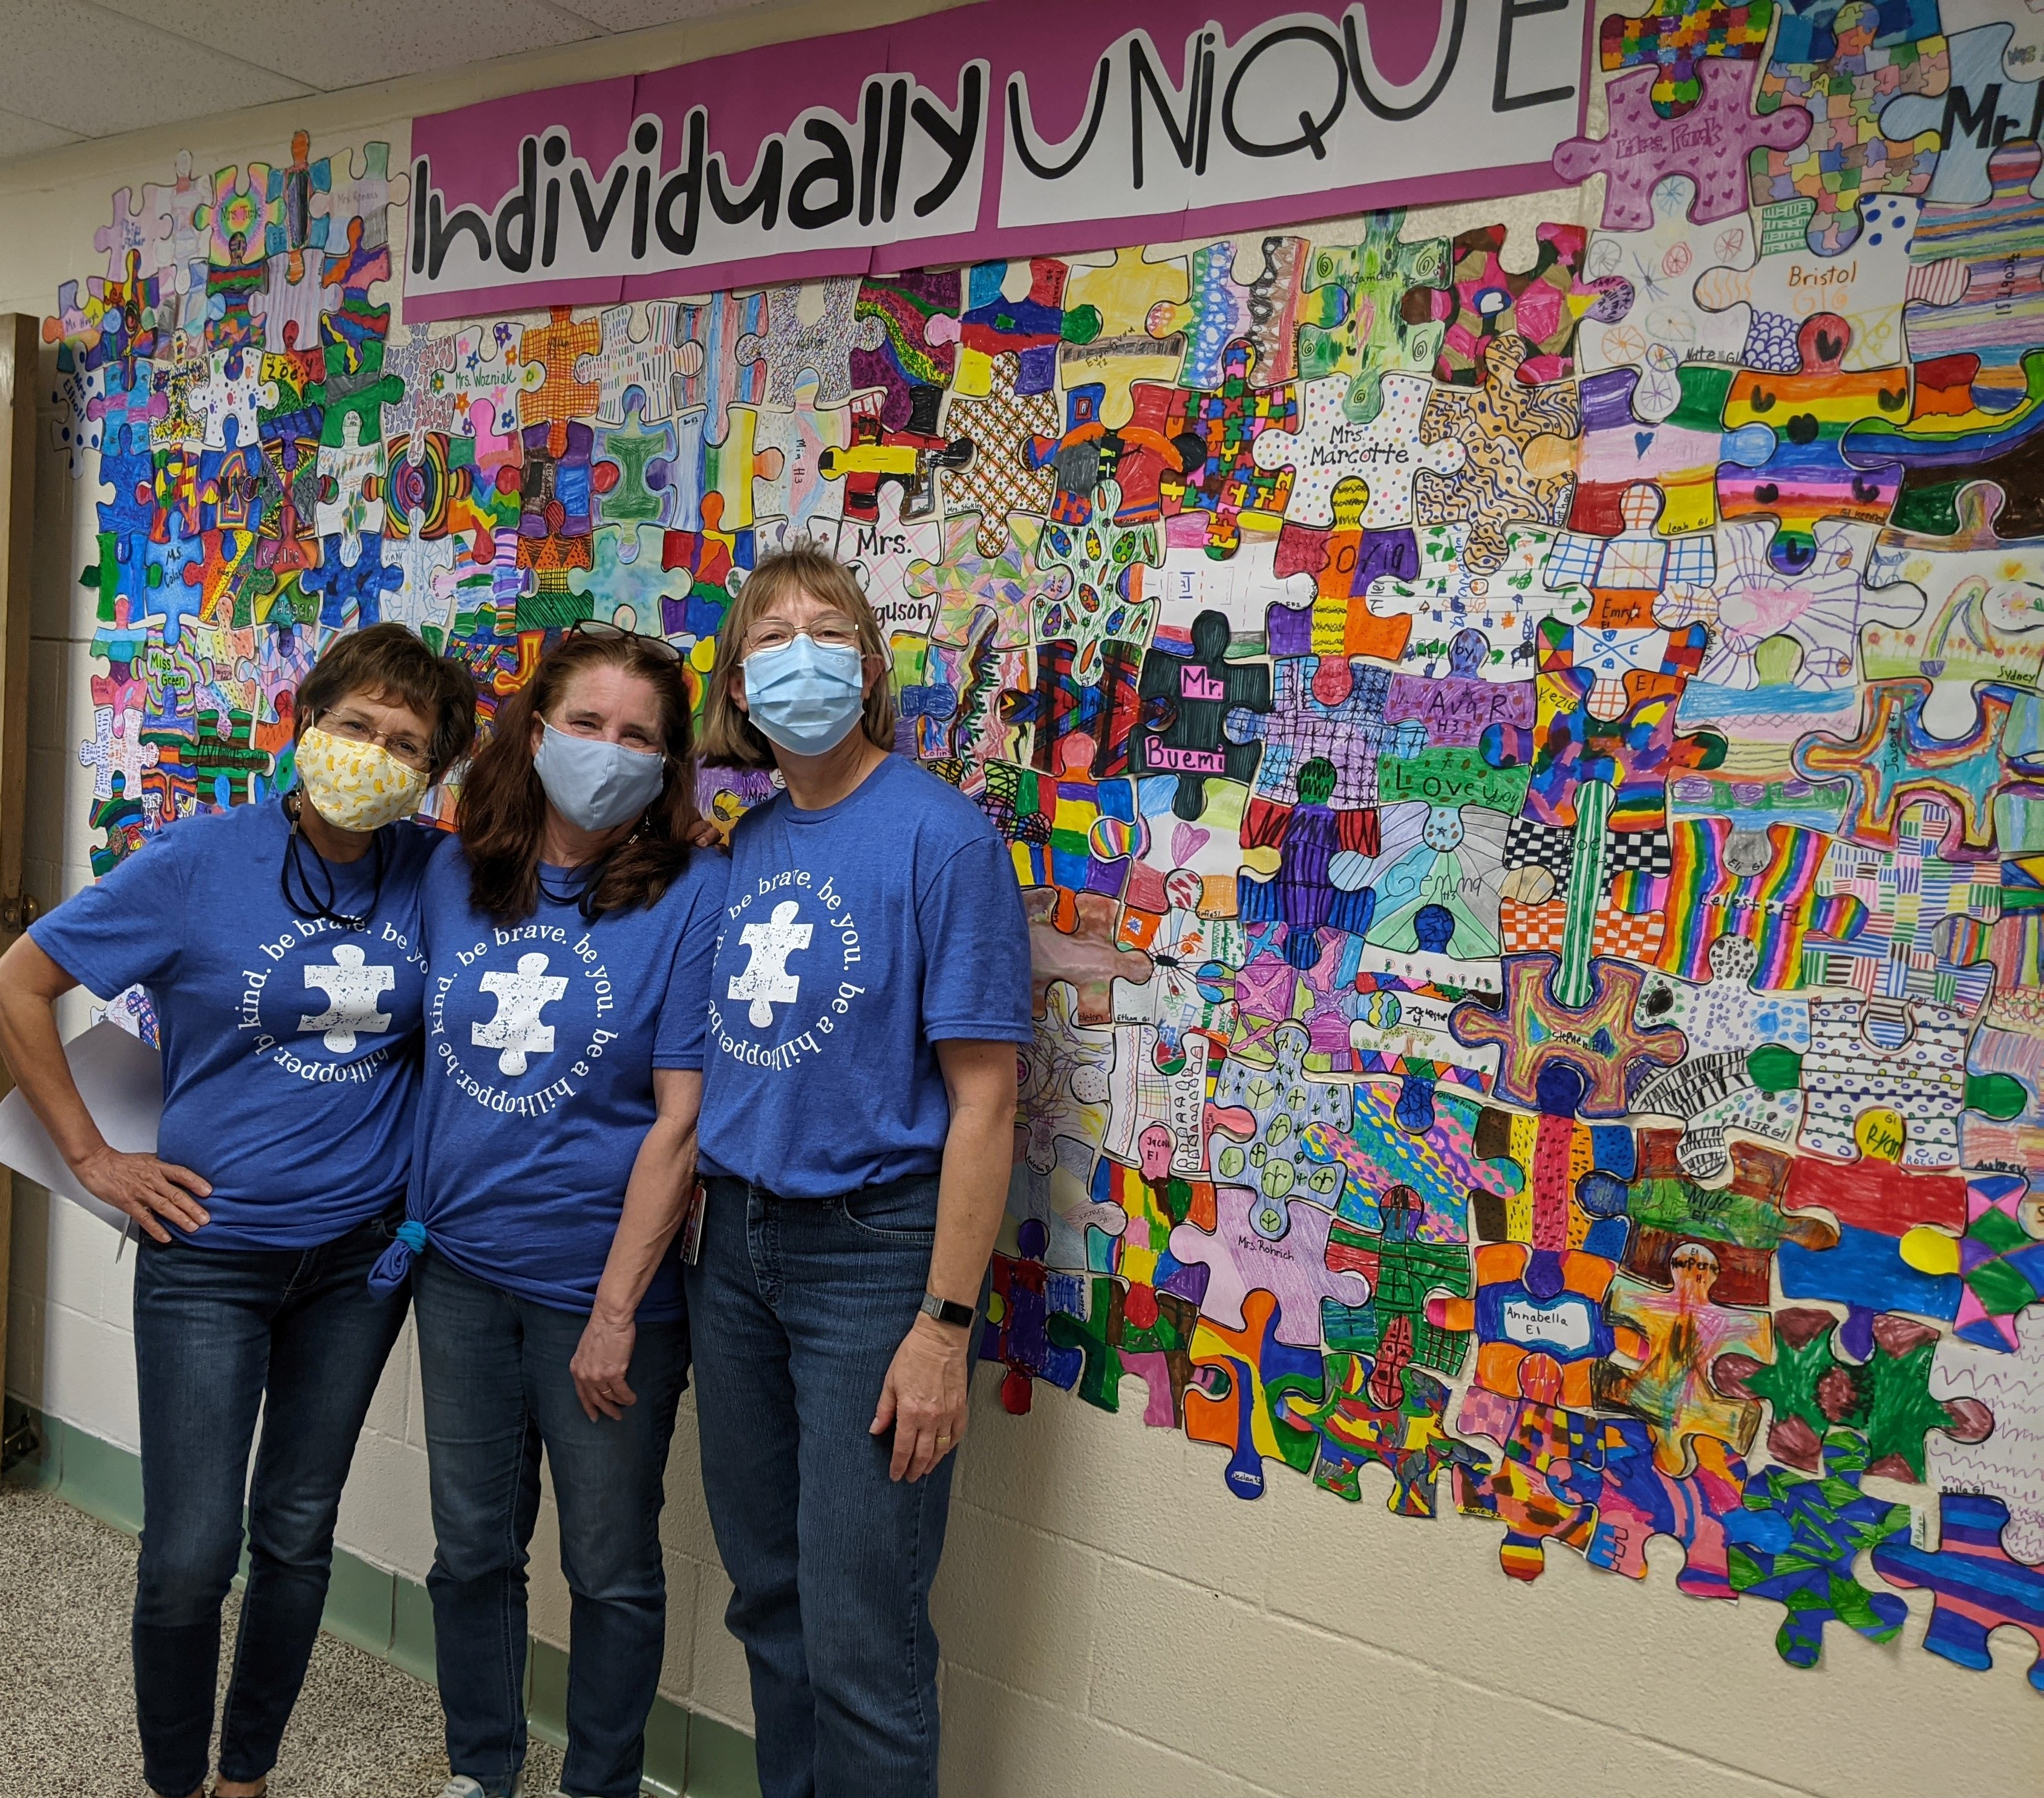 Rachel Diehl, Brenda Soulsby and Beth Stickley in Autism Awareness shirts in front of Munson Elementary's Individually Unique bulletin board on April 8, 2021